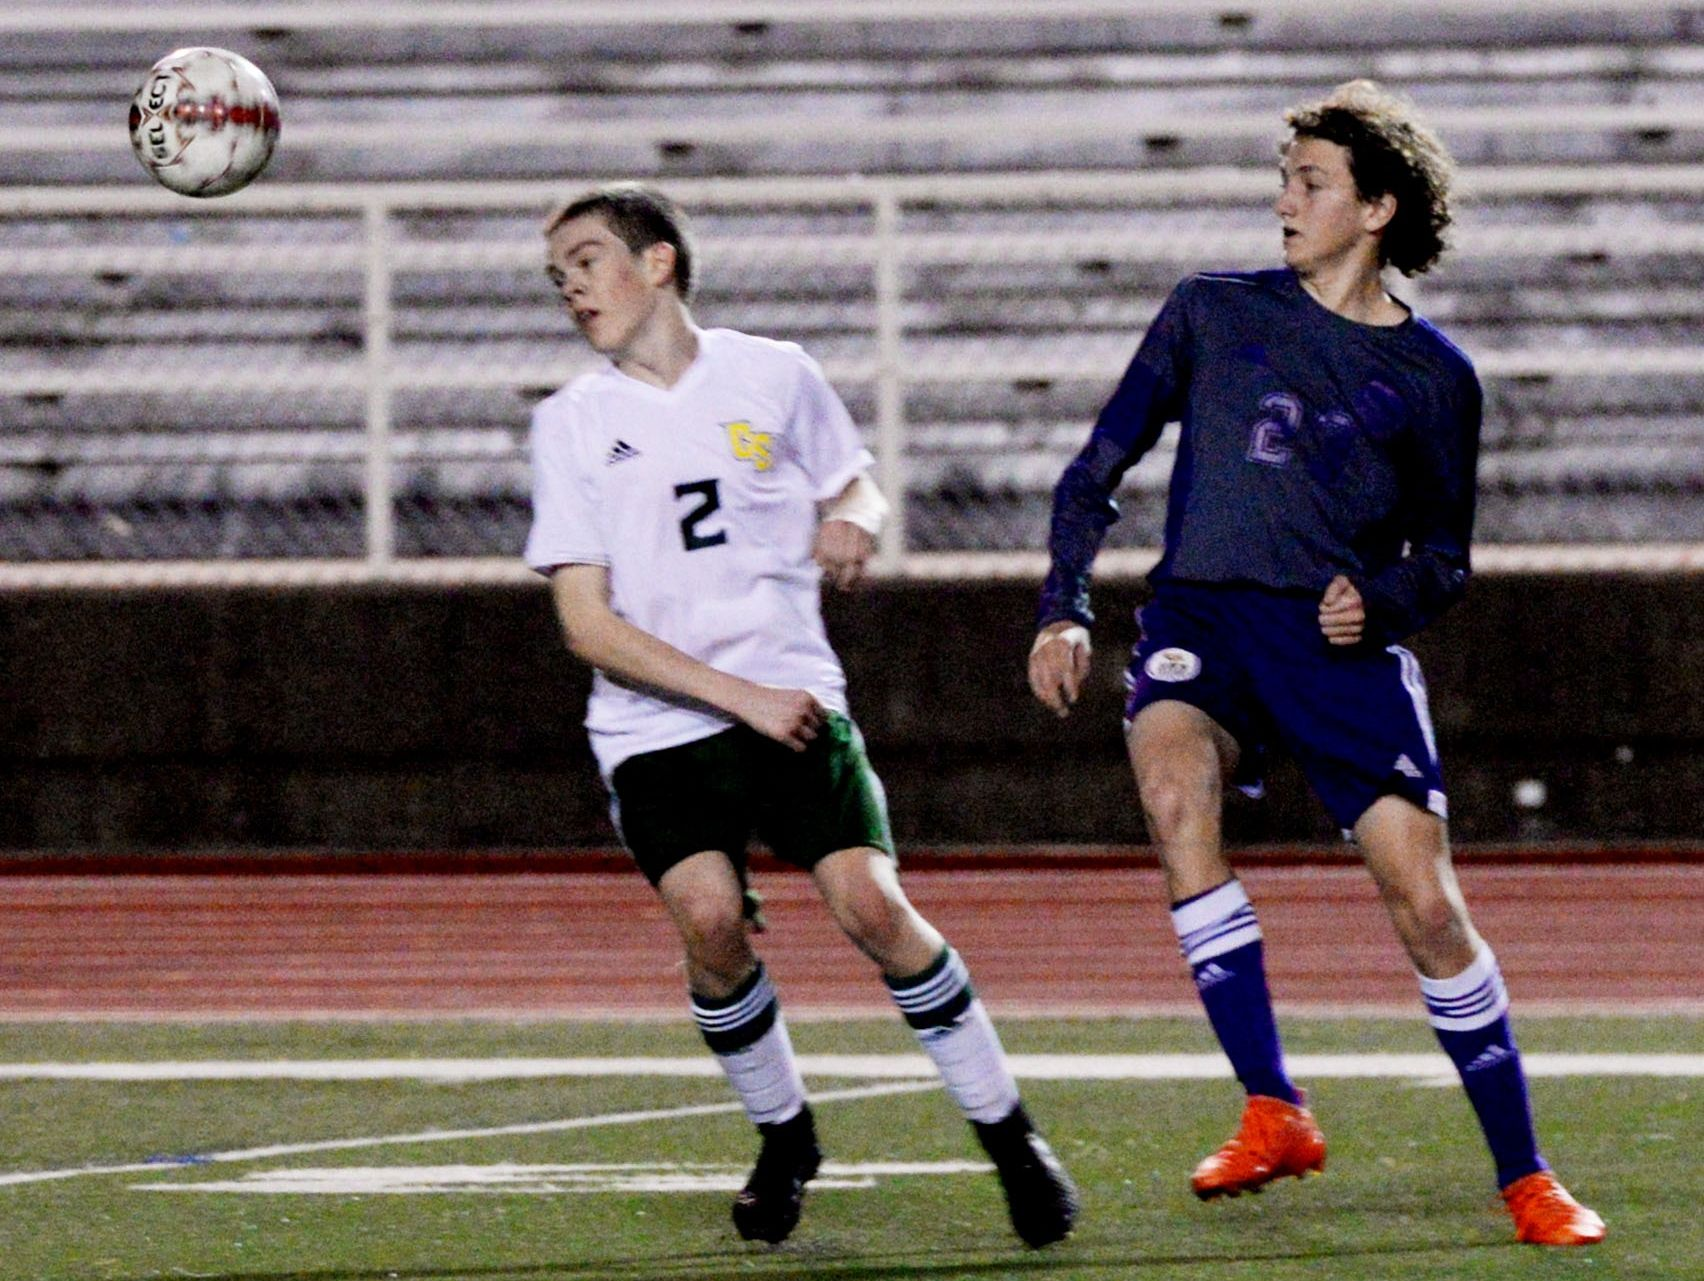 Captain Shreve's Gage Simpson and Benton's Isaac Ford during their game Tuesday evening.